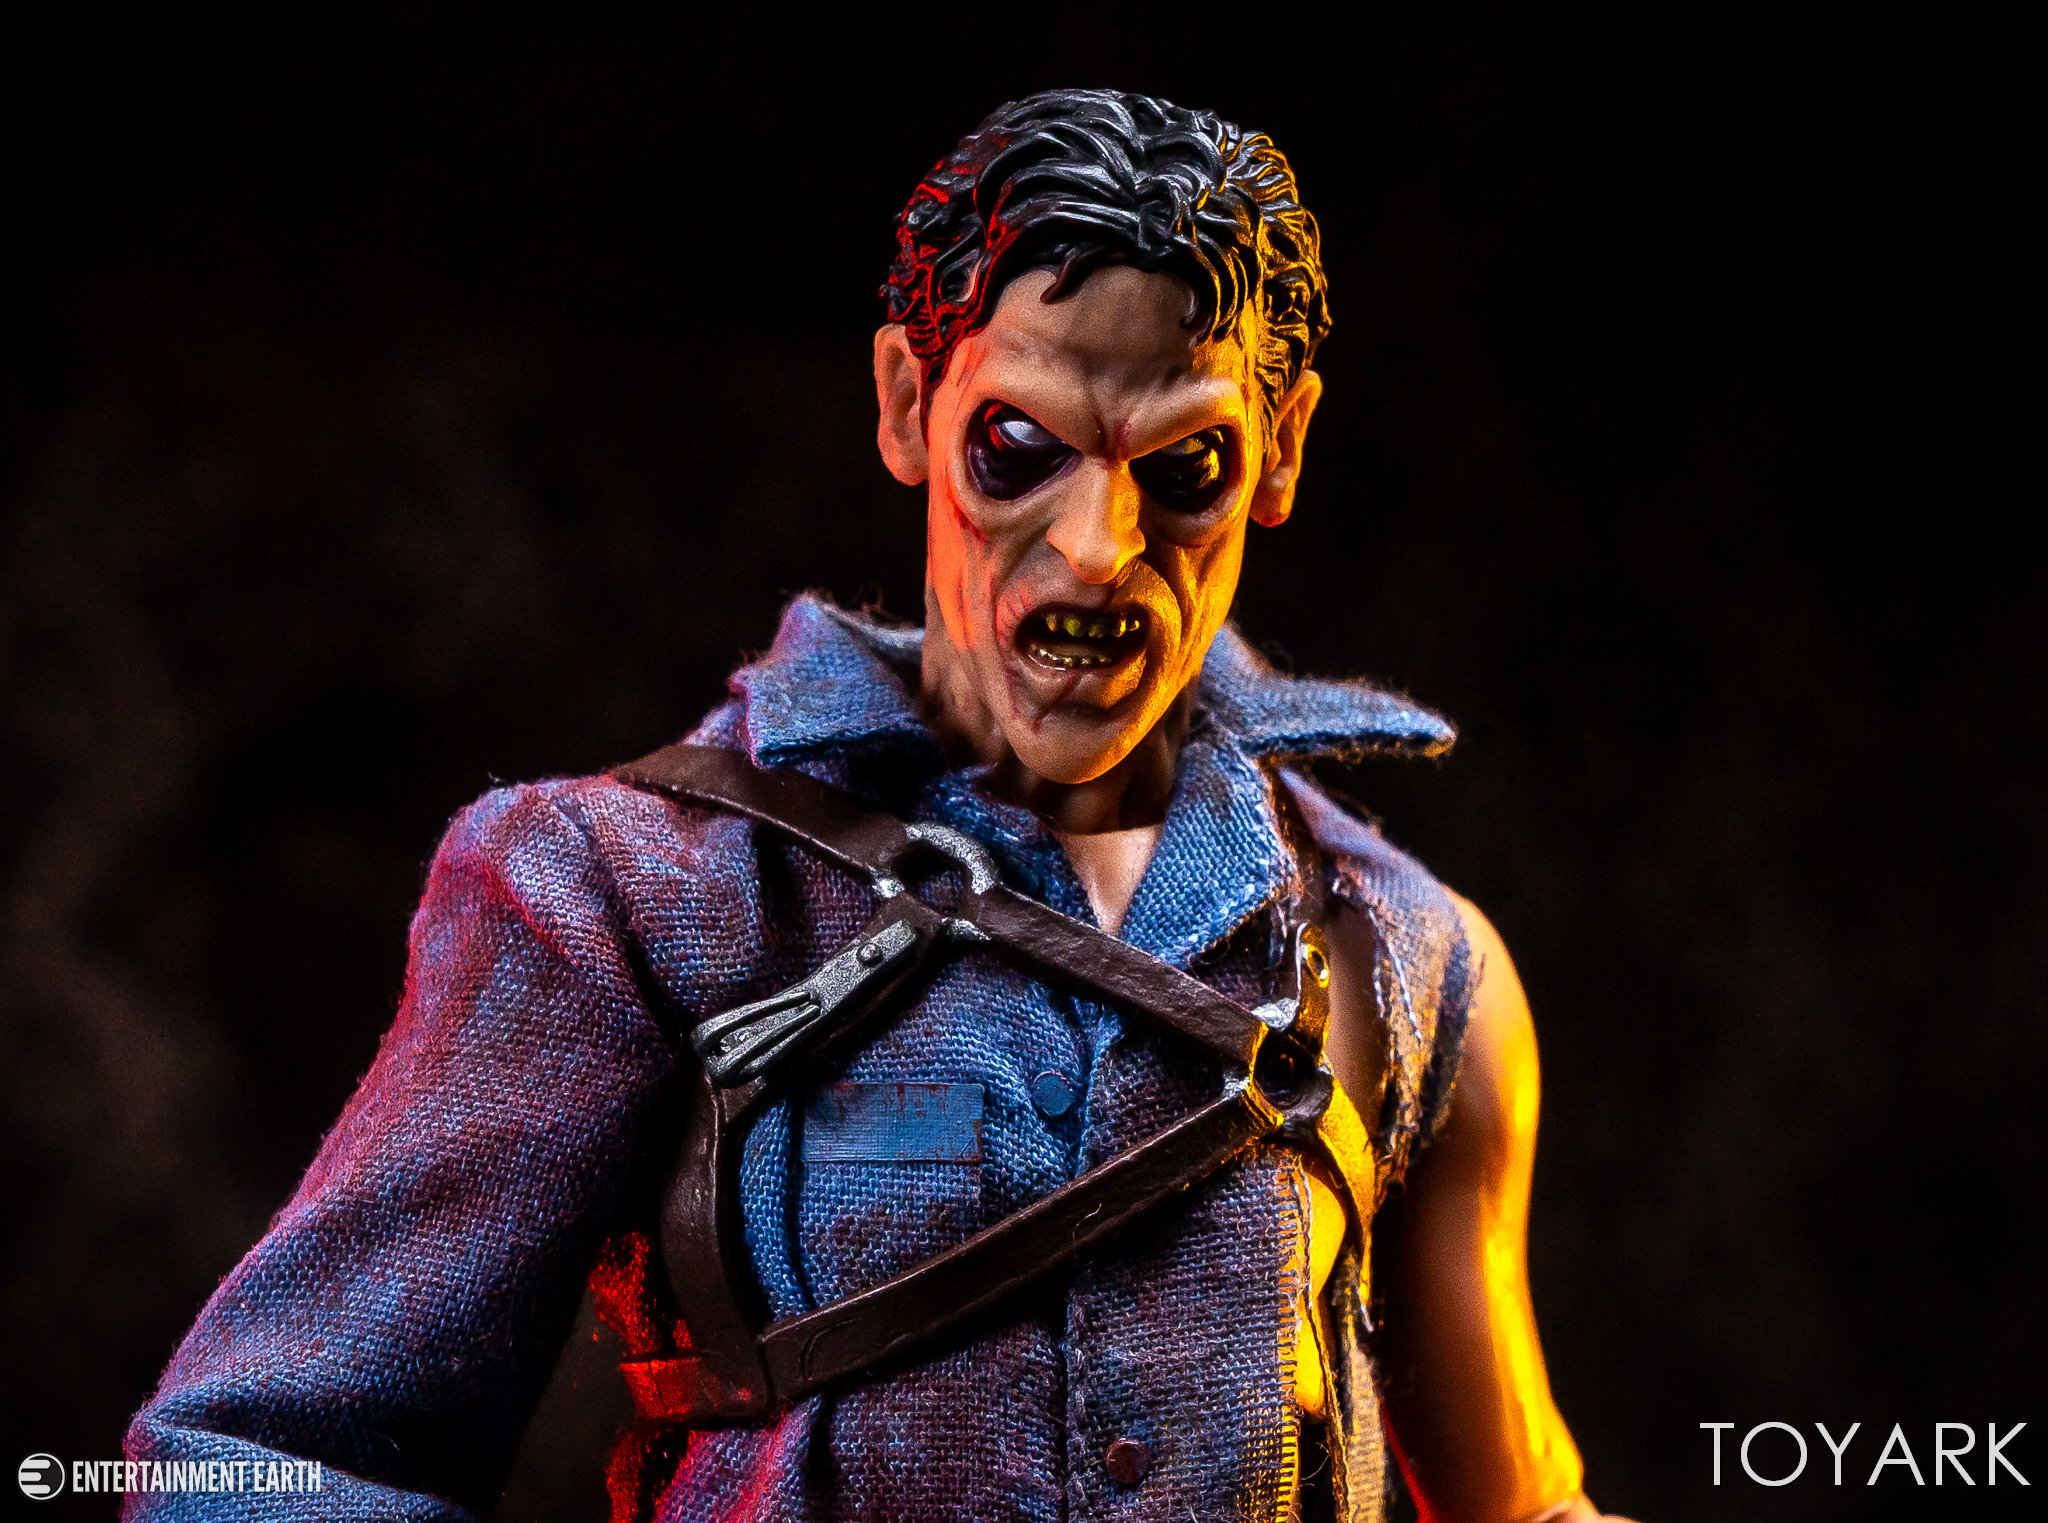 https://news.toyark.com/wp-content/uploads/sites/4/2019/01/Mezco-One12-Evil-Dead-2-Ash-043.jpg